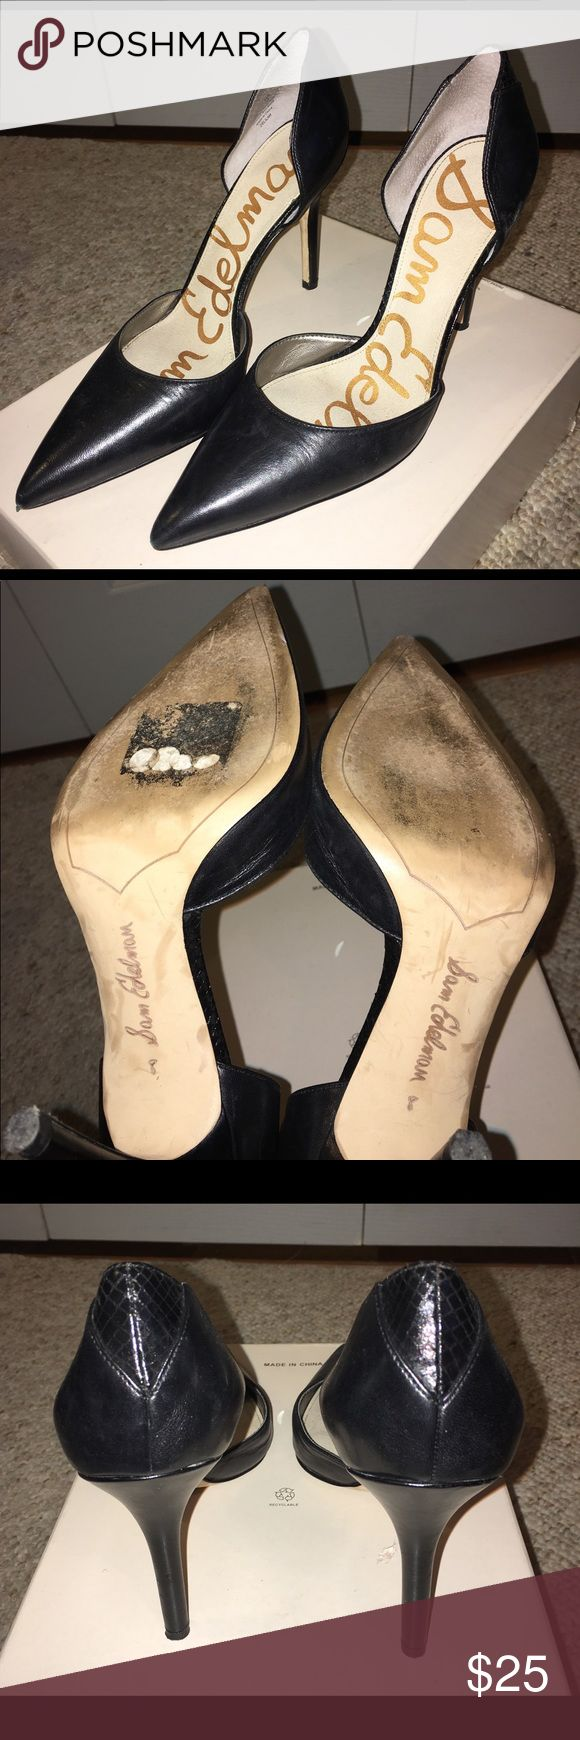 Sam Edelman heels Great shoes 👠for any occasion . Merry Christmas 🎁🎄 Sam Edelman Shoes Heels